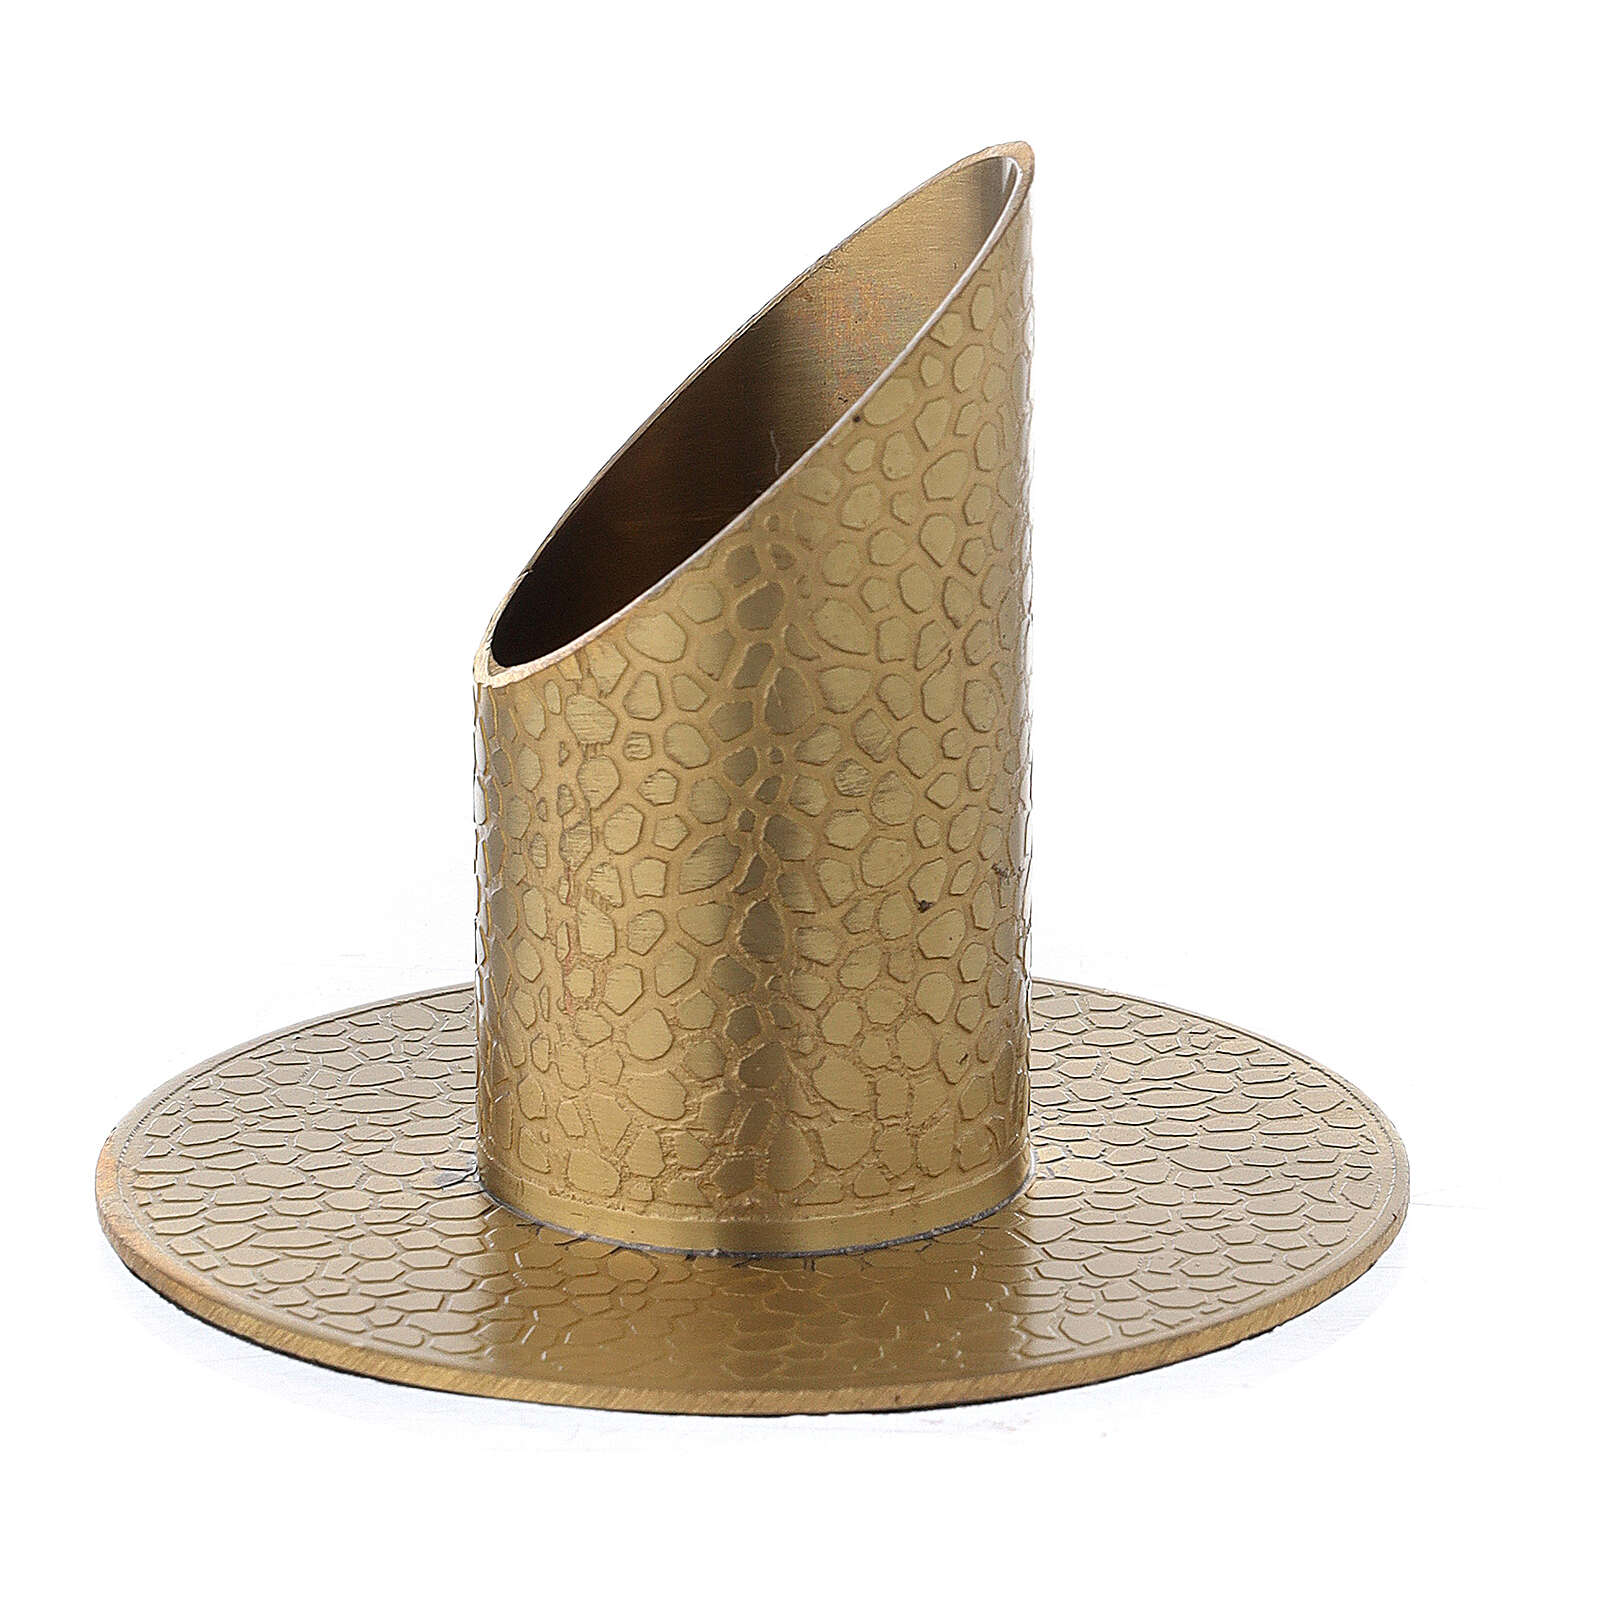 Gold plated brass candle holder with leather finish 1 1/4 in 4